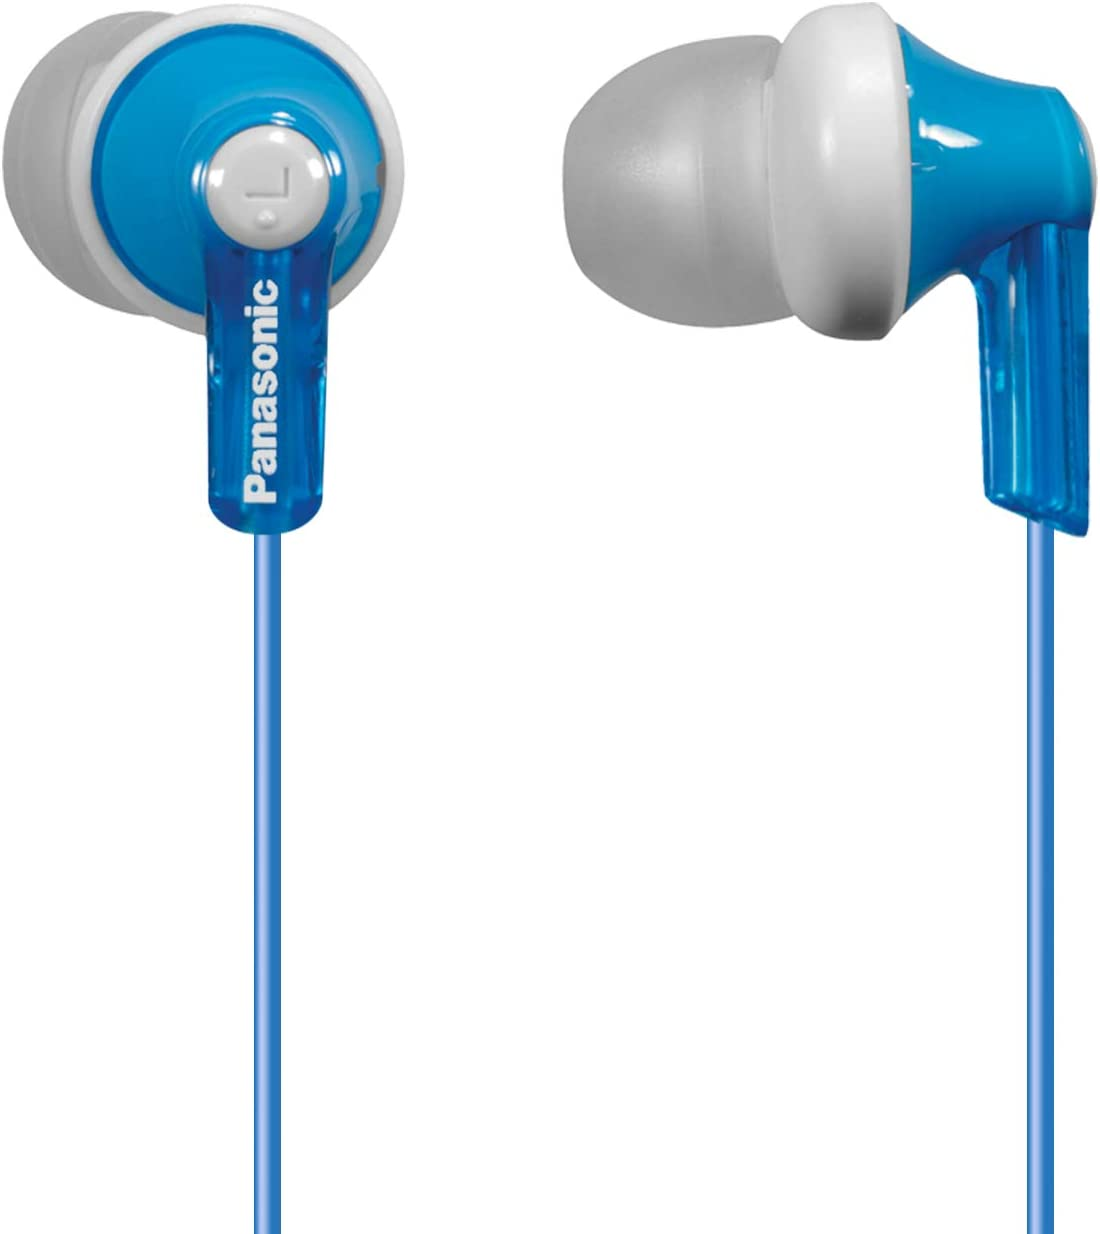 Panasonic ErgoFit In-Ear Earbud Headphones RP-HJE120-A (Blue) Dynamic Crystal-Clear Sound, Ergonomic Comfort-Fit